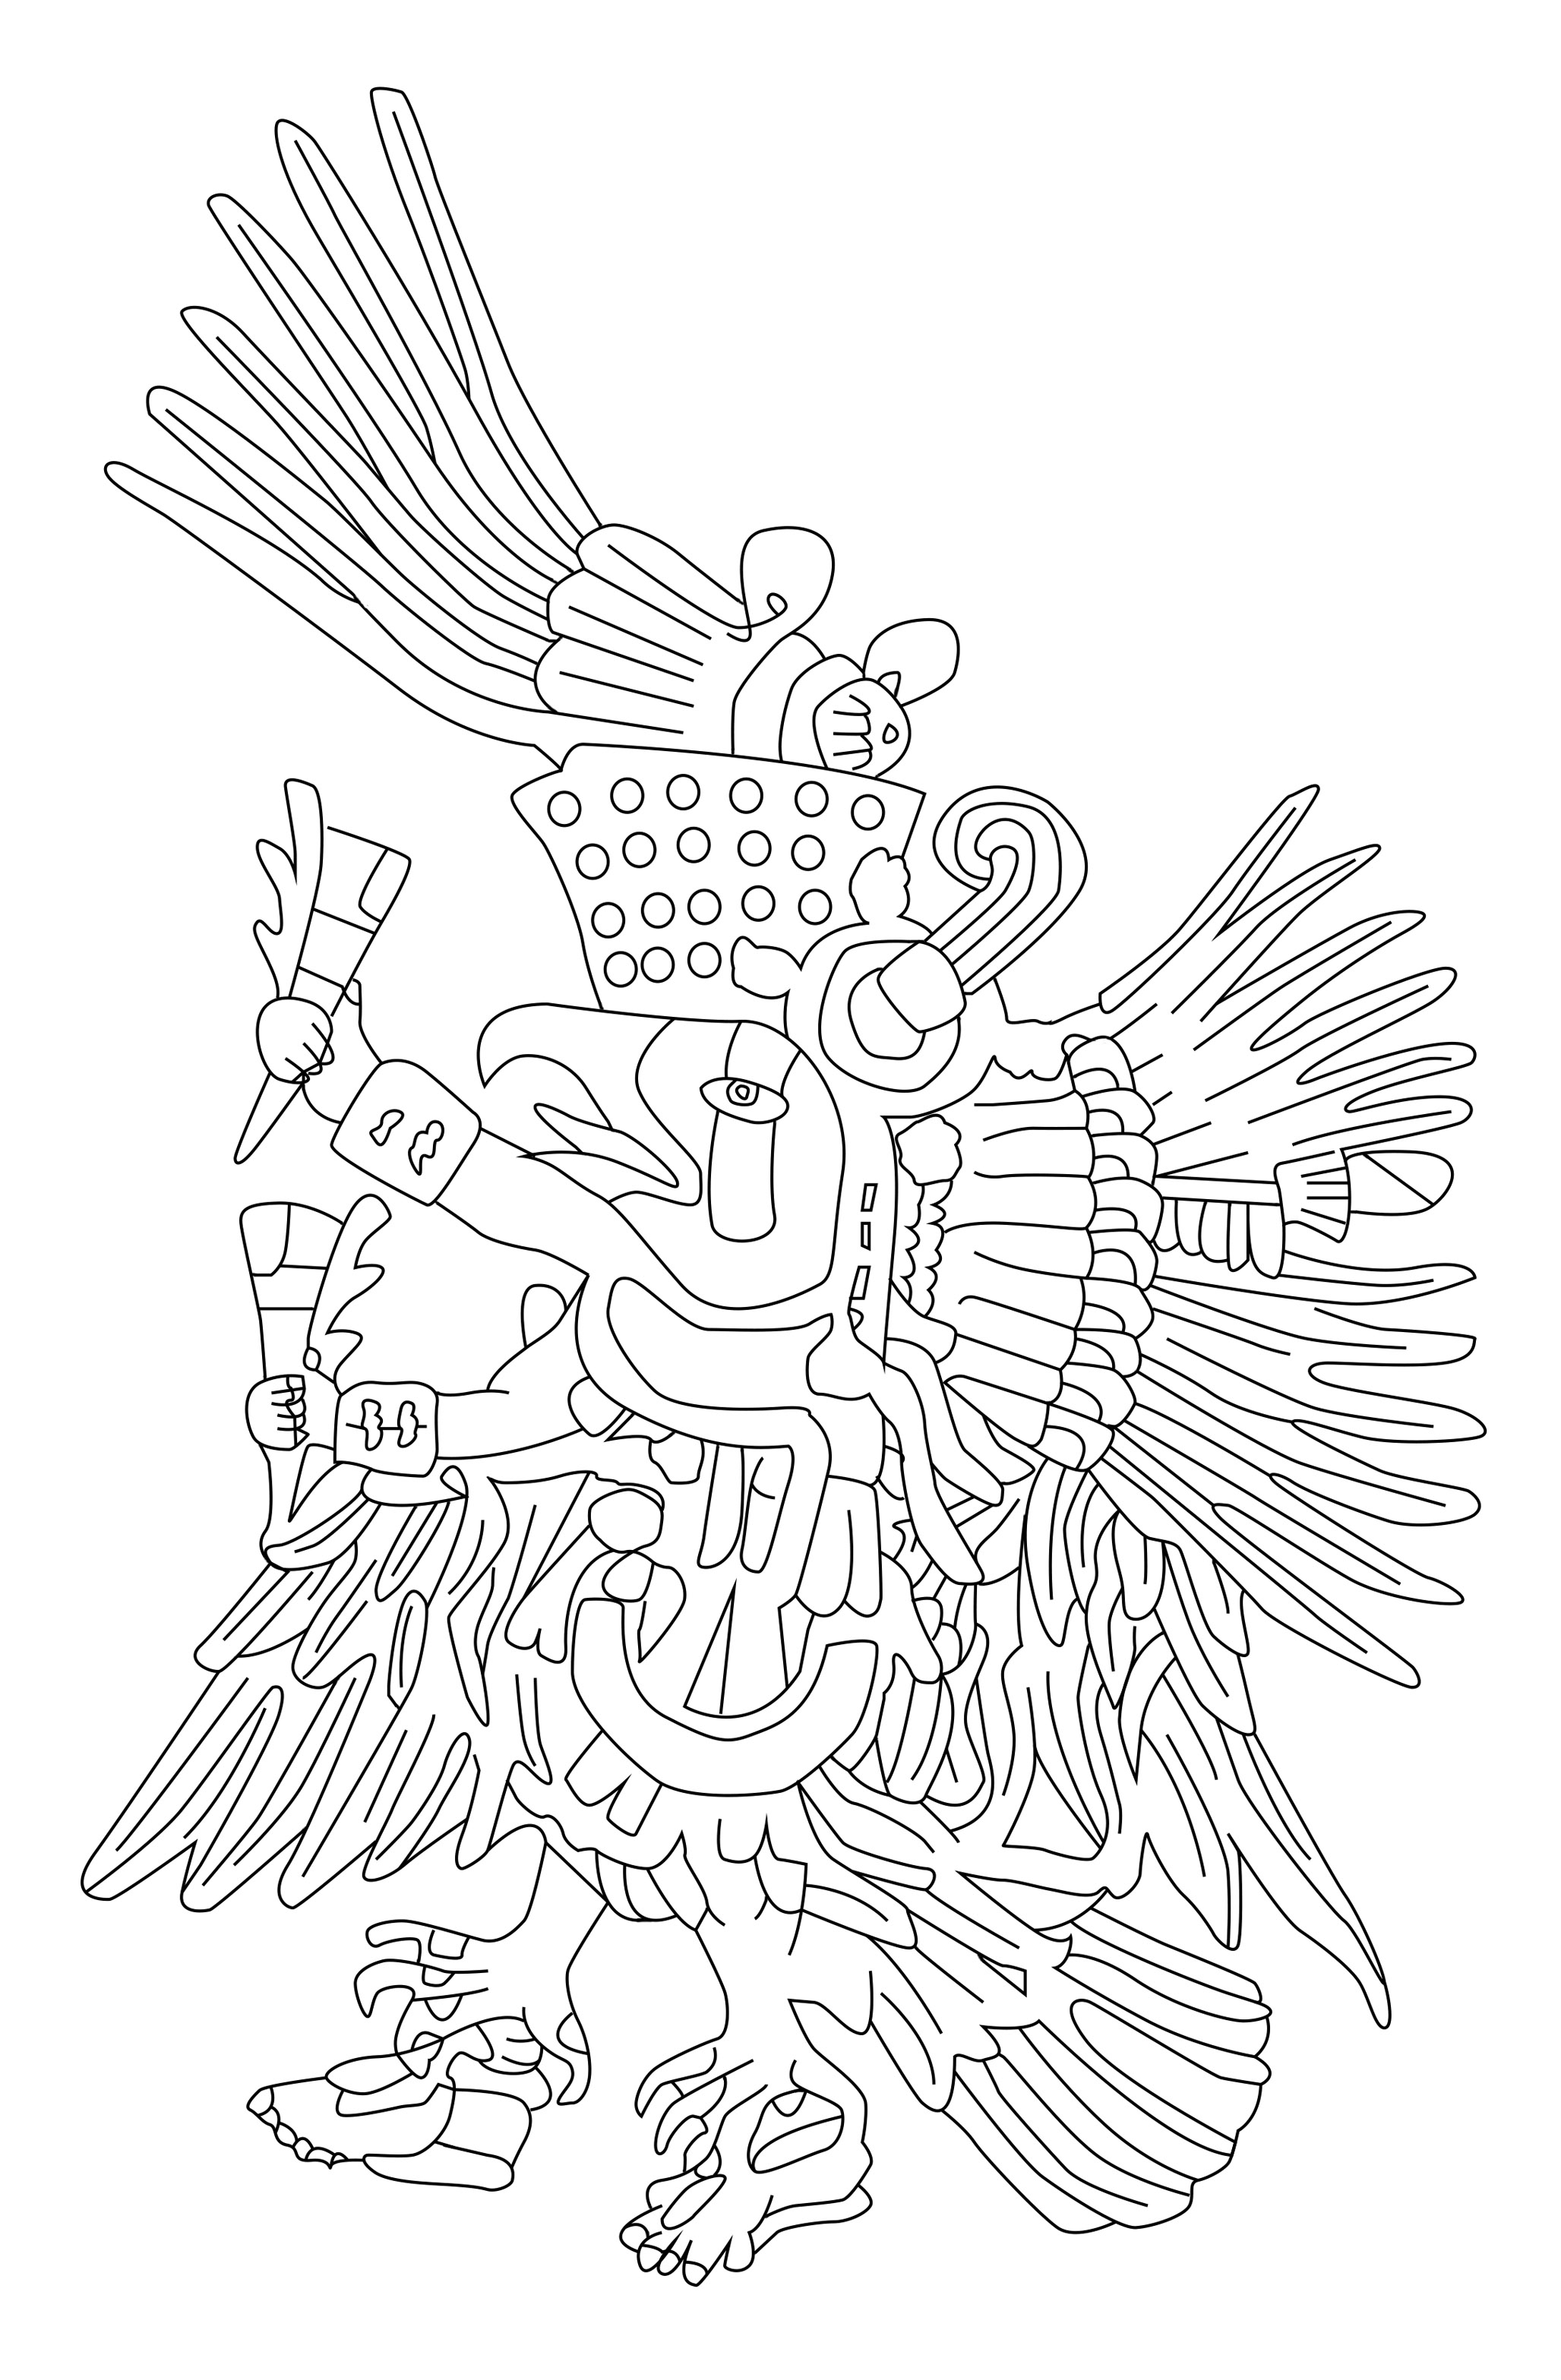 Quetzalcoatl is a Mesoamerican deity whose name comes from the Nahuatl language and means 'feathered serpent'. Color it !